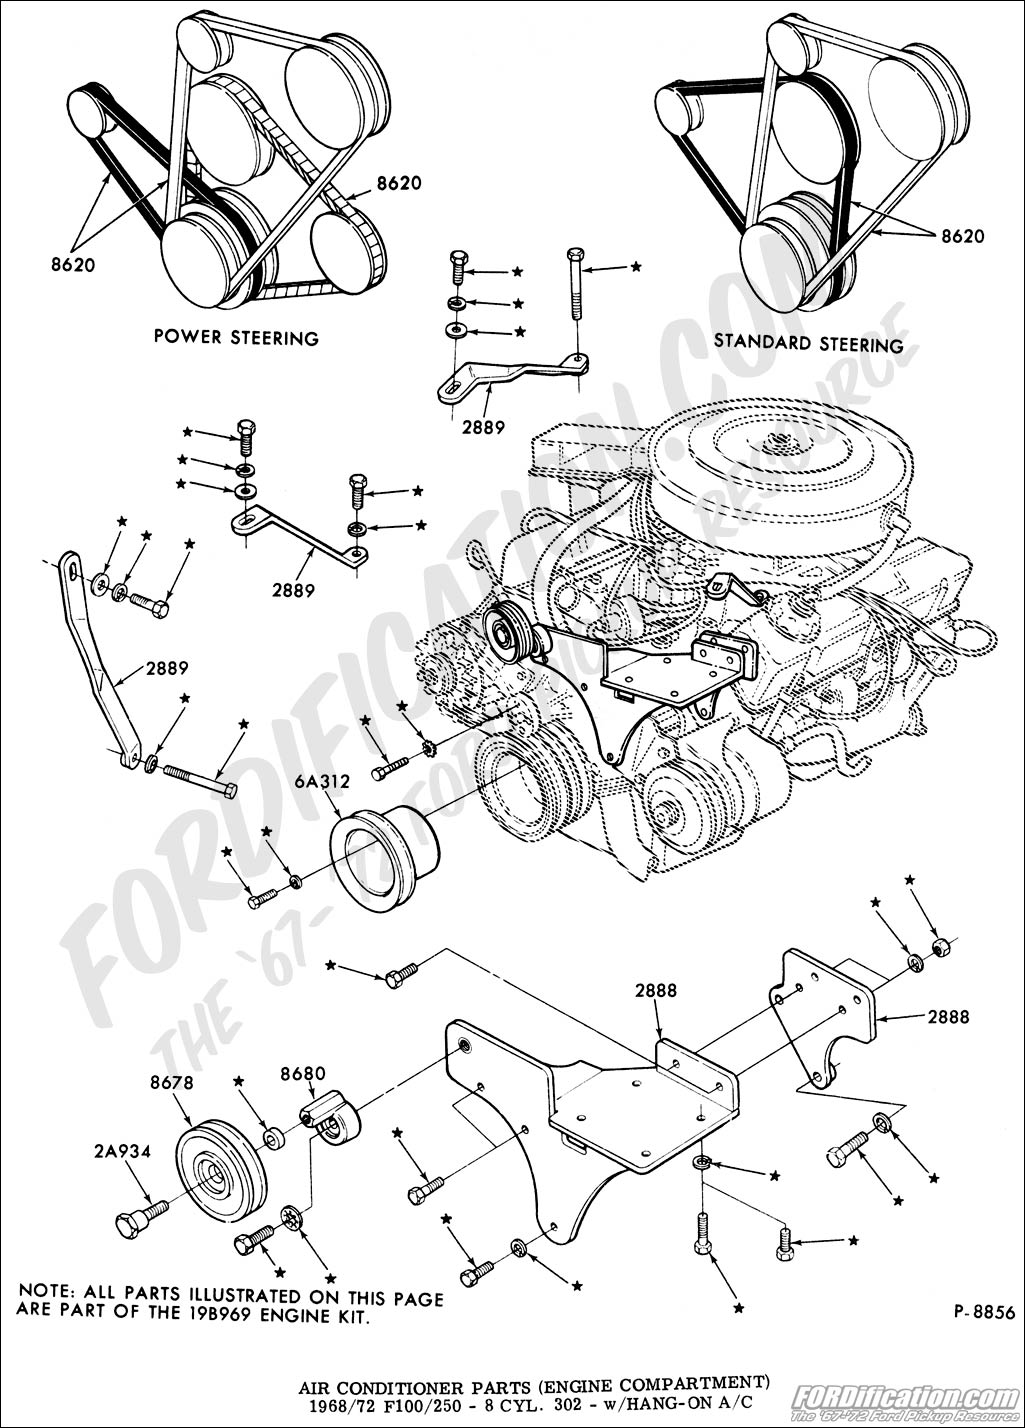 1974 Ford 302 Engine Diagram Free Wiring For You 1966 F100 Picture Get Image 1972 Specs Block